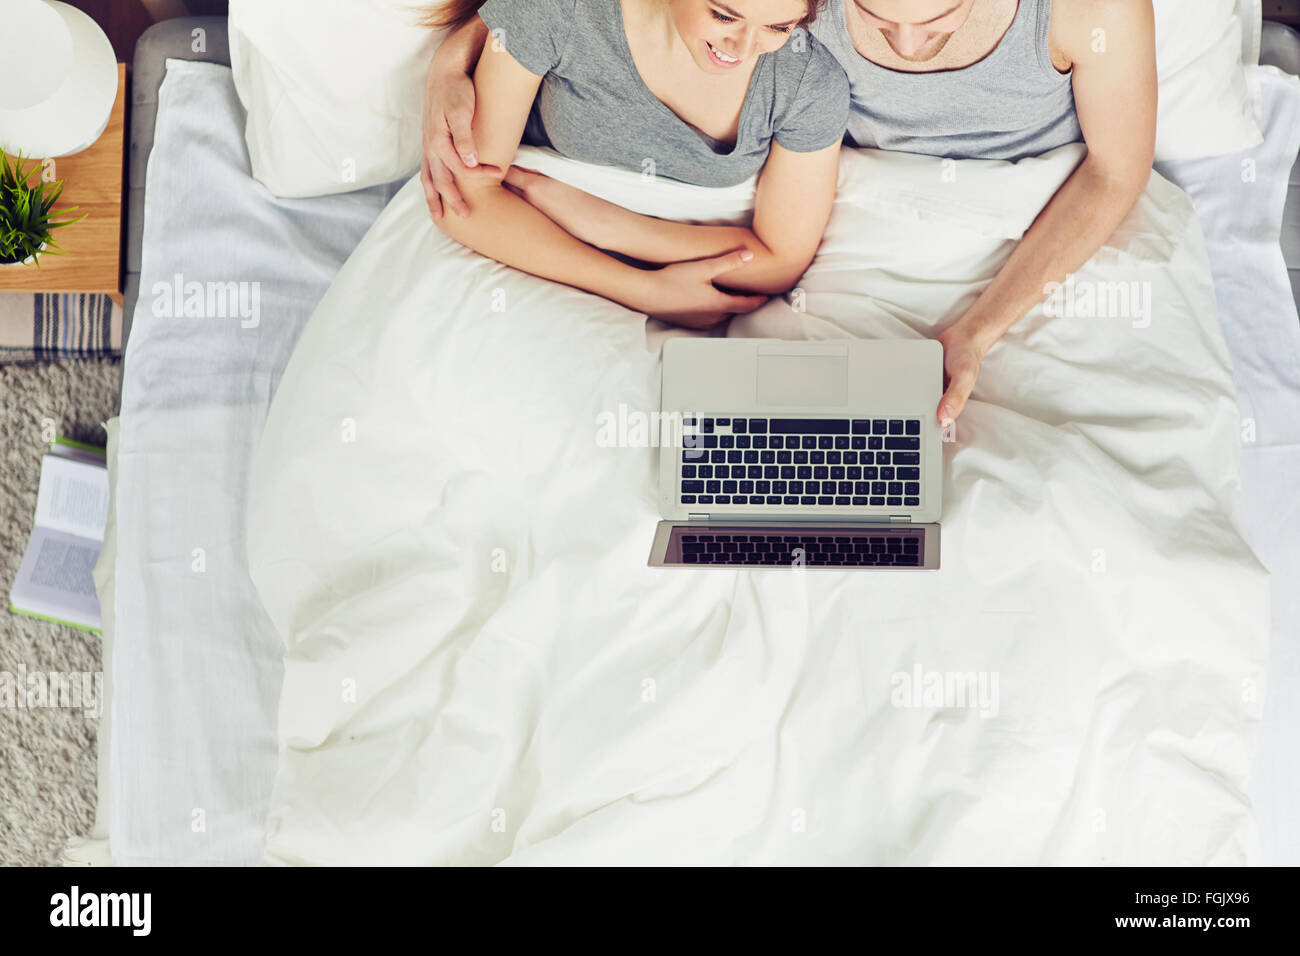 Young man and woman with laptop networking together in bed Banque D'Images